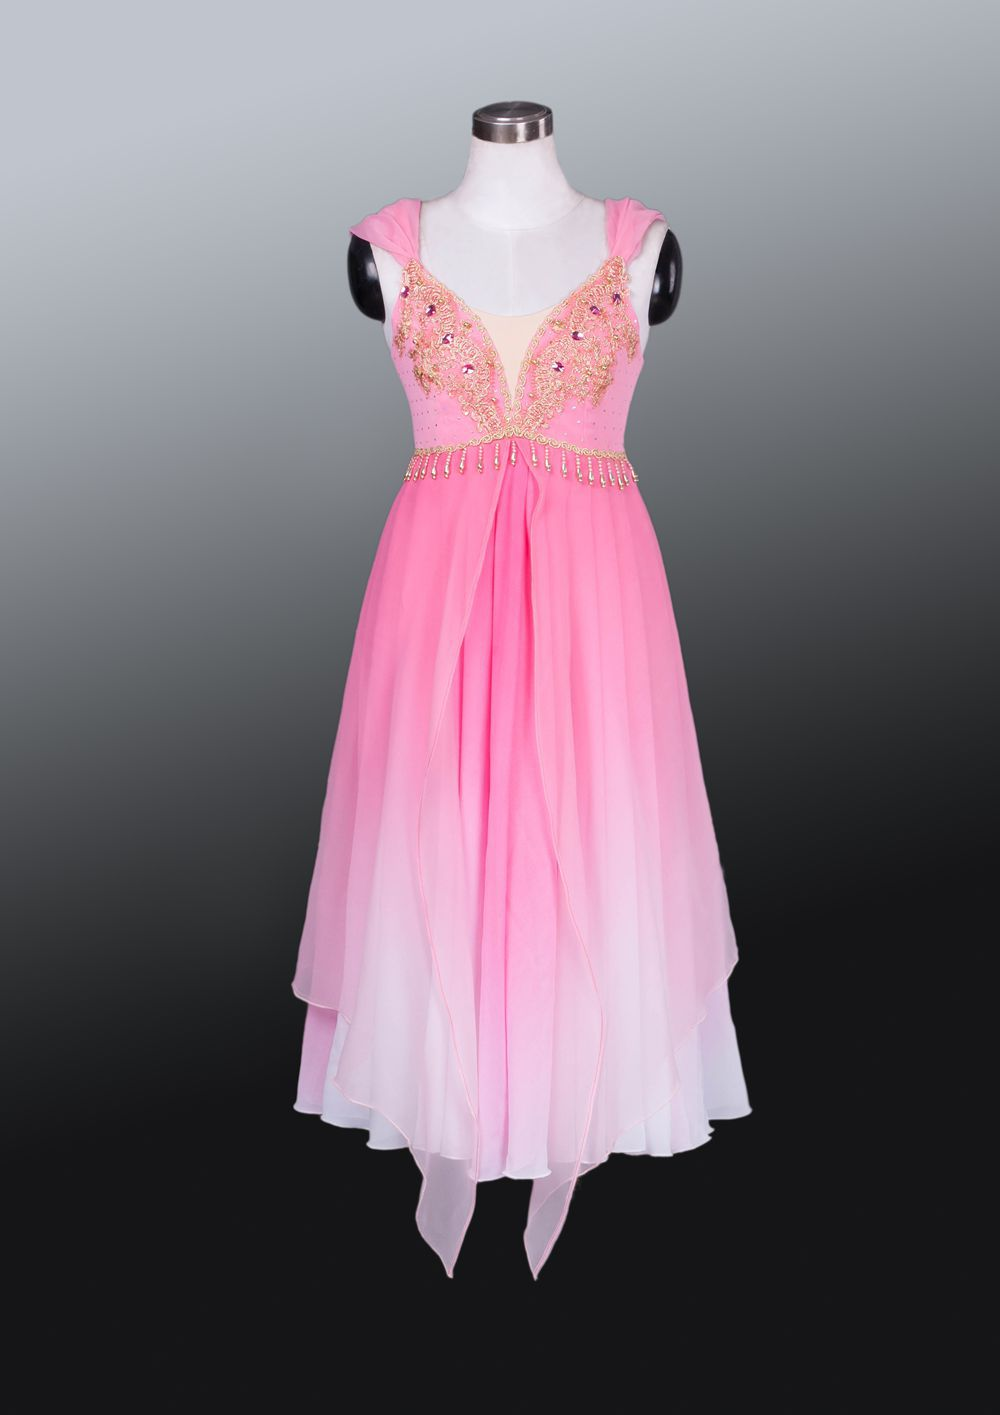 2015 new arrival adult child high quality chiffon pink long professional ballet dress performance ballet dresses